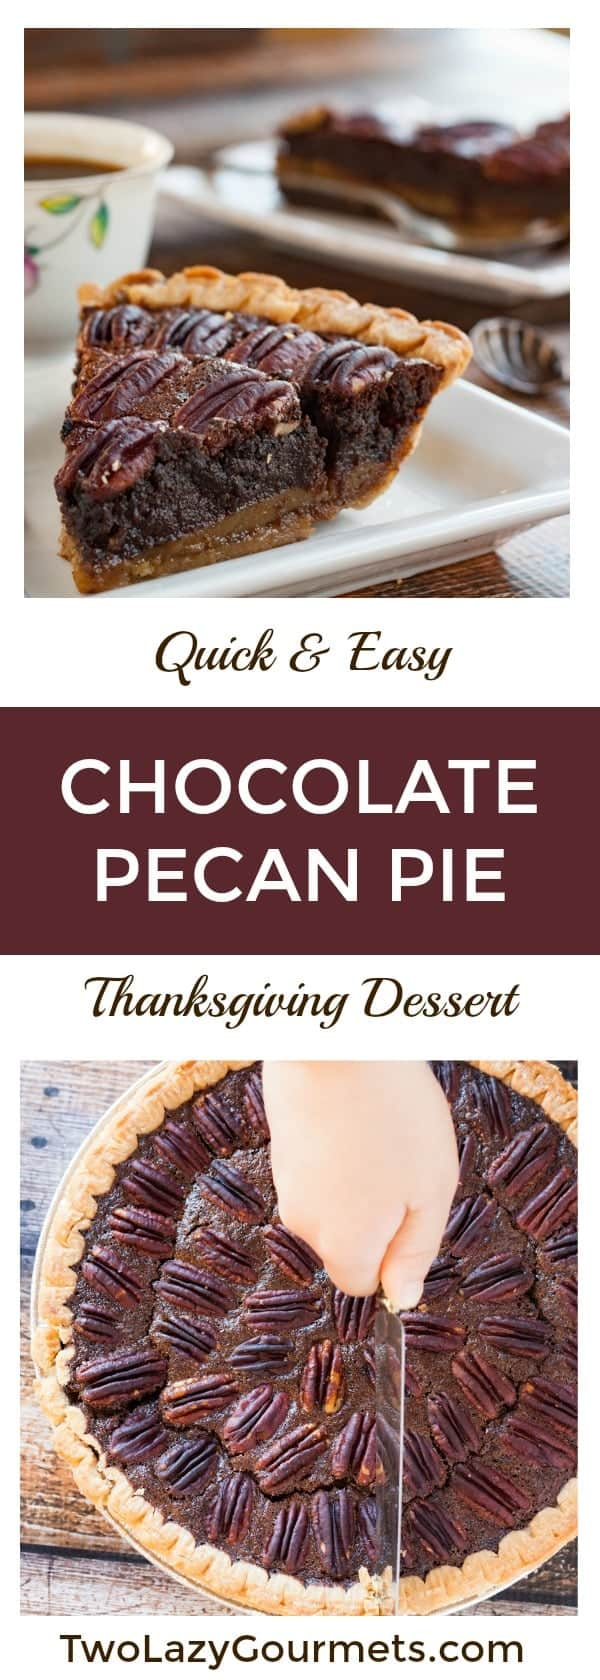 Chocolate Pecan Pie is a quick and easy dessert that's perfect for Thanksgiving #thanksgiving #thanksgivingrecipe #thanksgivingdessert #dessert #chocolatepecanpie #pecanpie #thanksgivingdinner #thanksgivingmenu